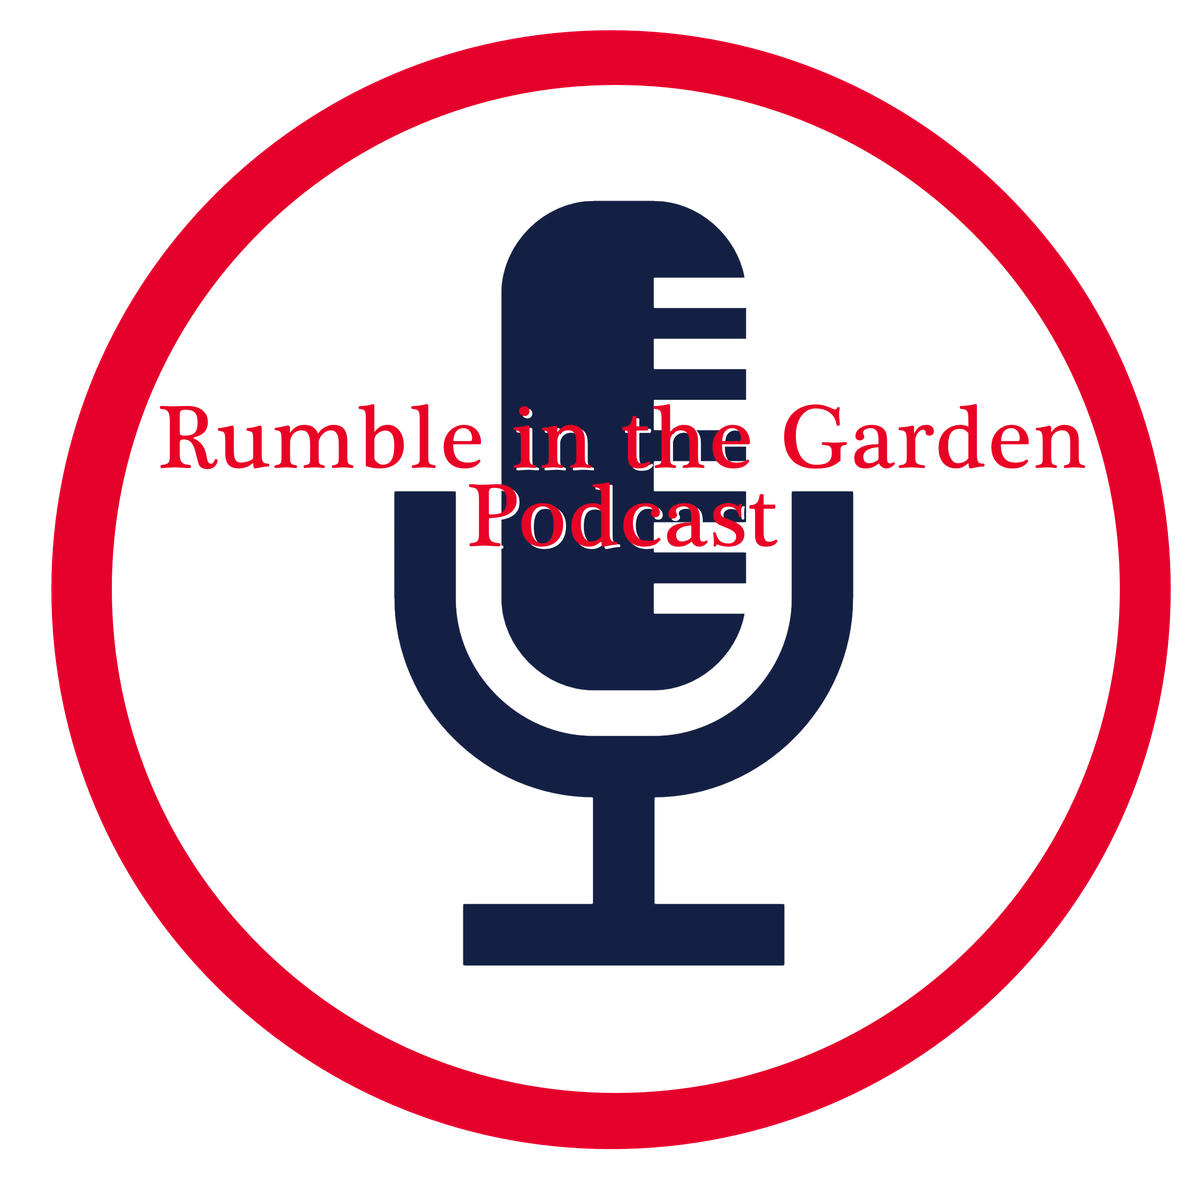 Rumble in the Garden podcast logo